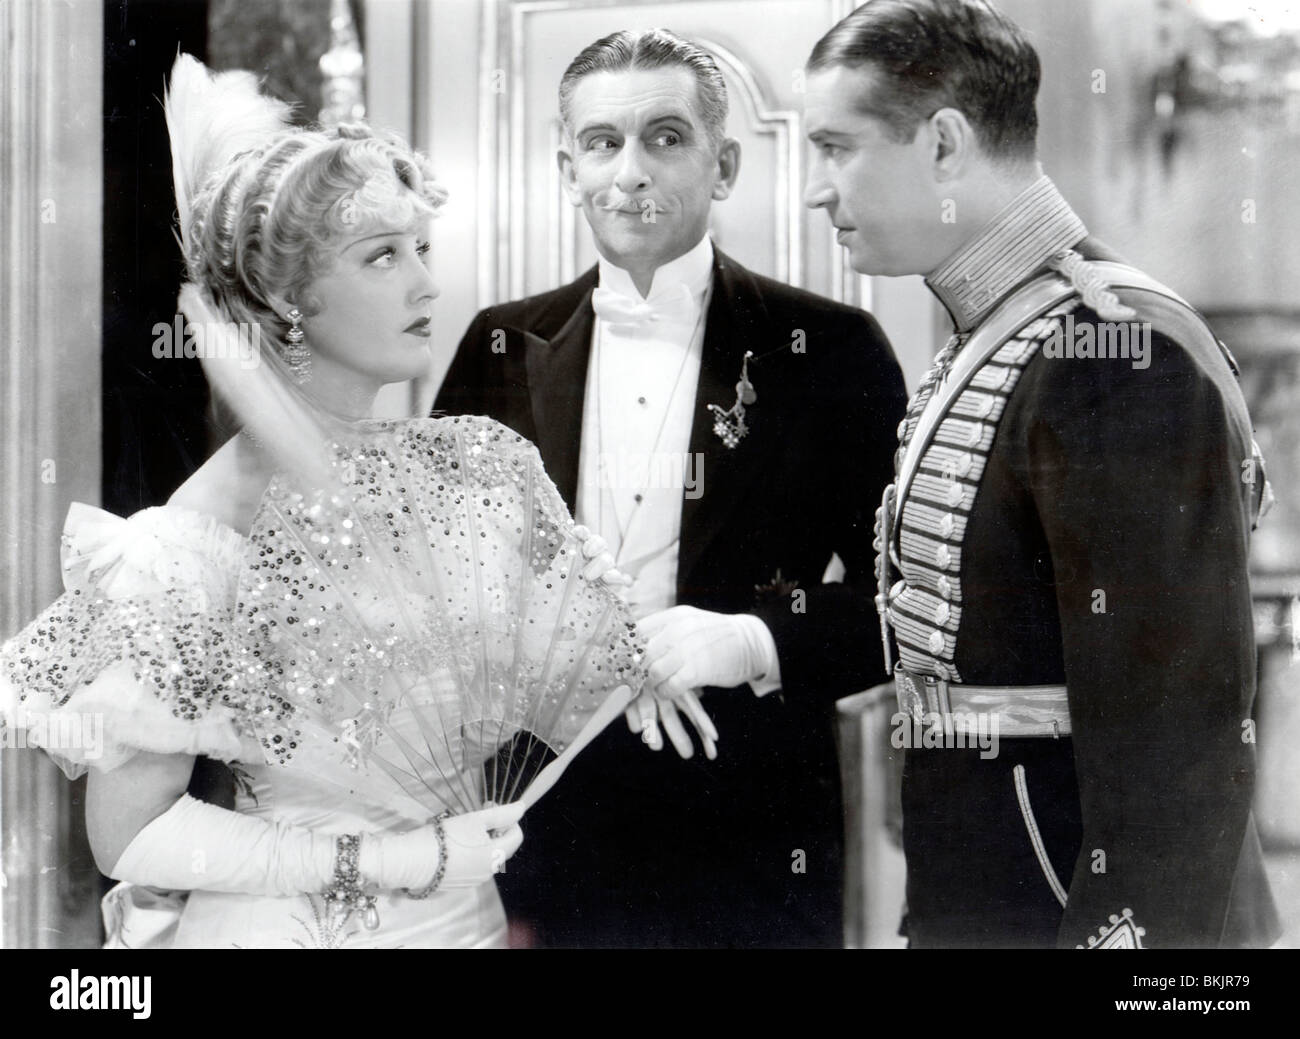 THE MERRY WIDOW (1934) JEANETTE MACDONALD, EDWARD EVERETT HORTON, MAURICE CHEVALIER MRRW 001 FOH - Stock Image